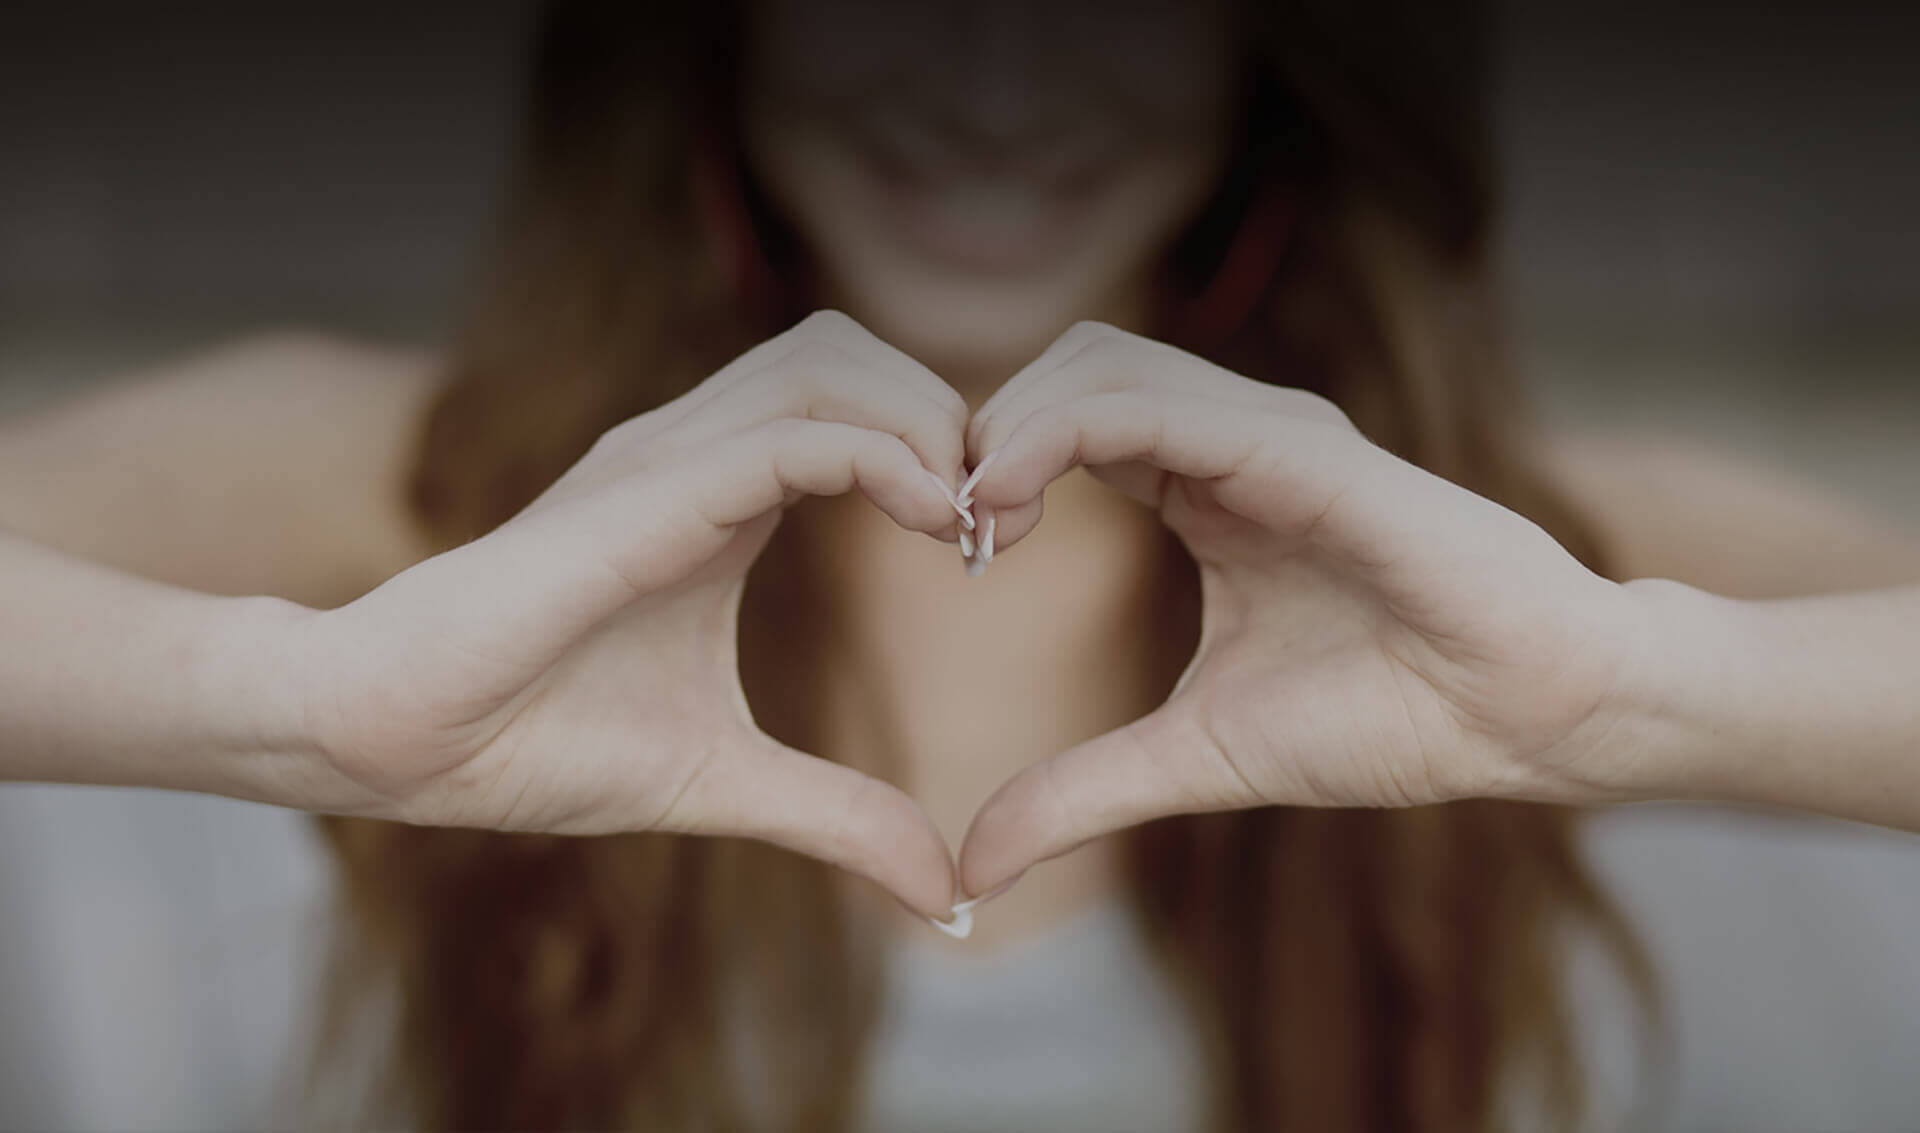 Woman holding her hands together to form a heart shape